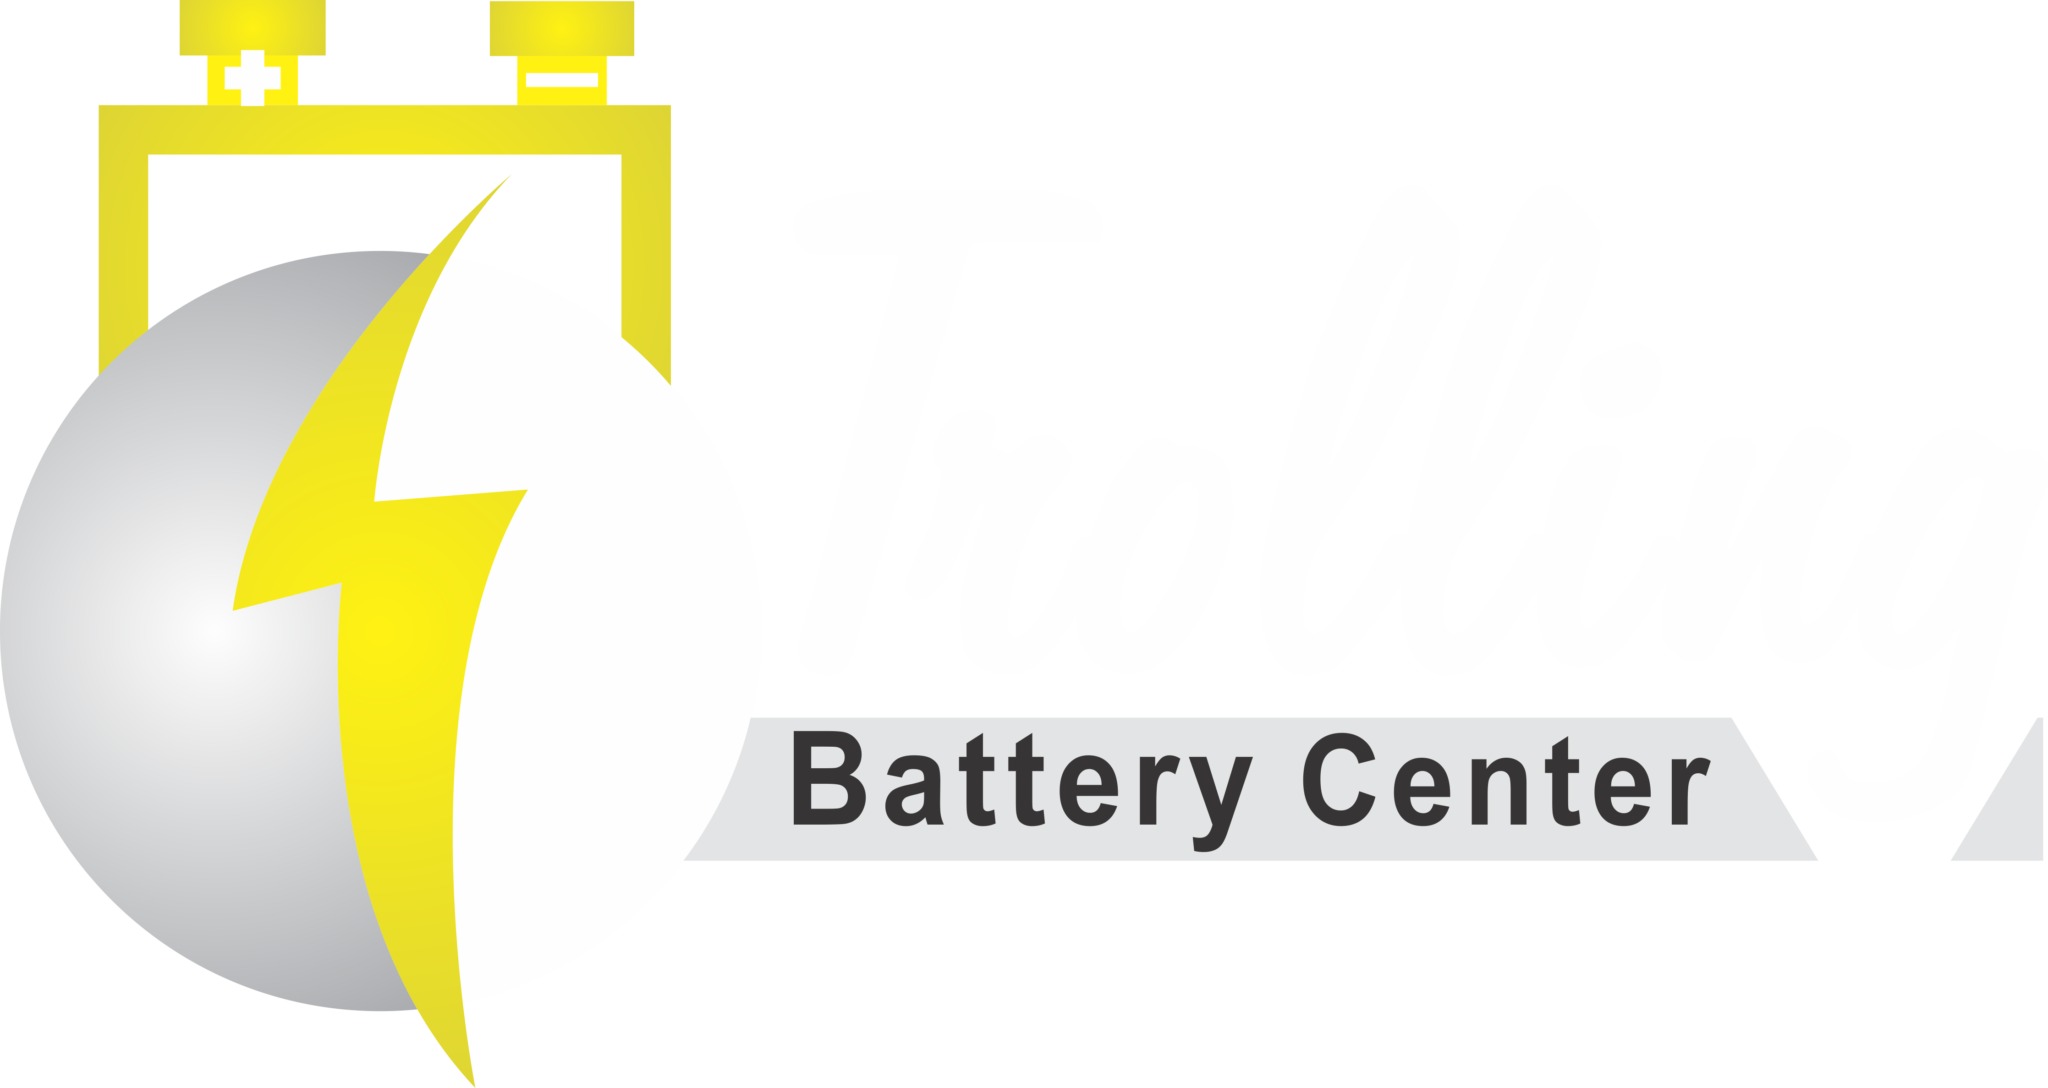 Trolling Battery Center